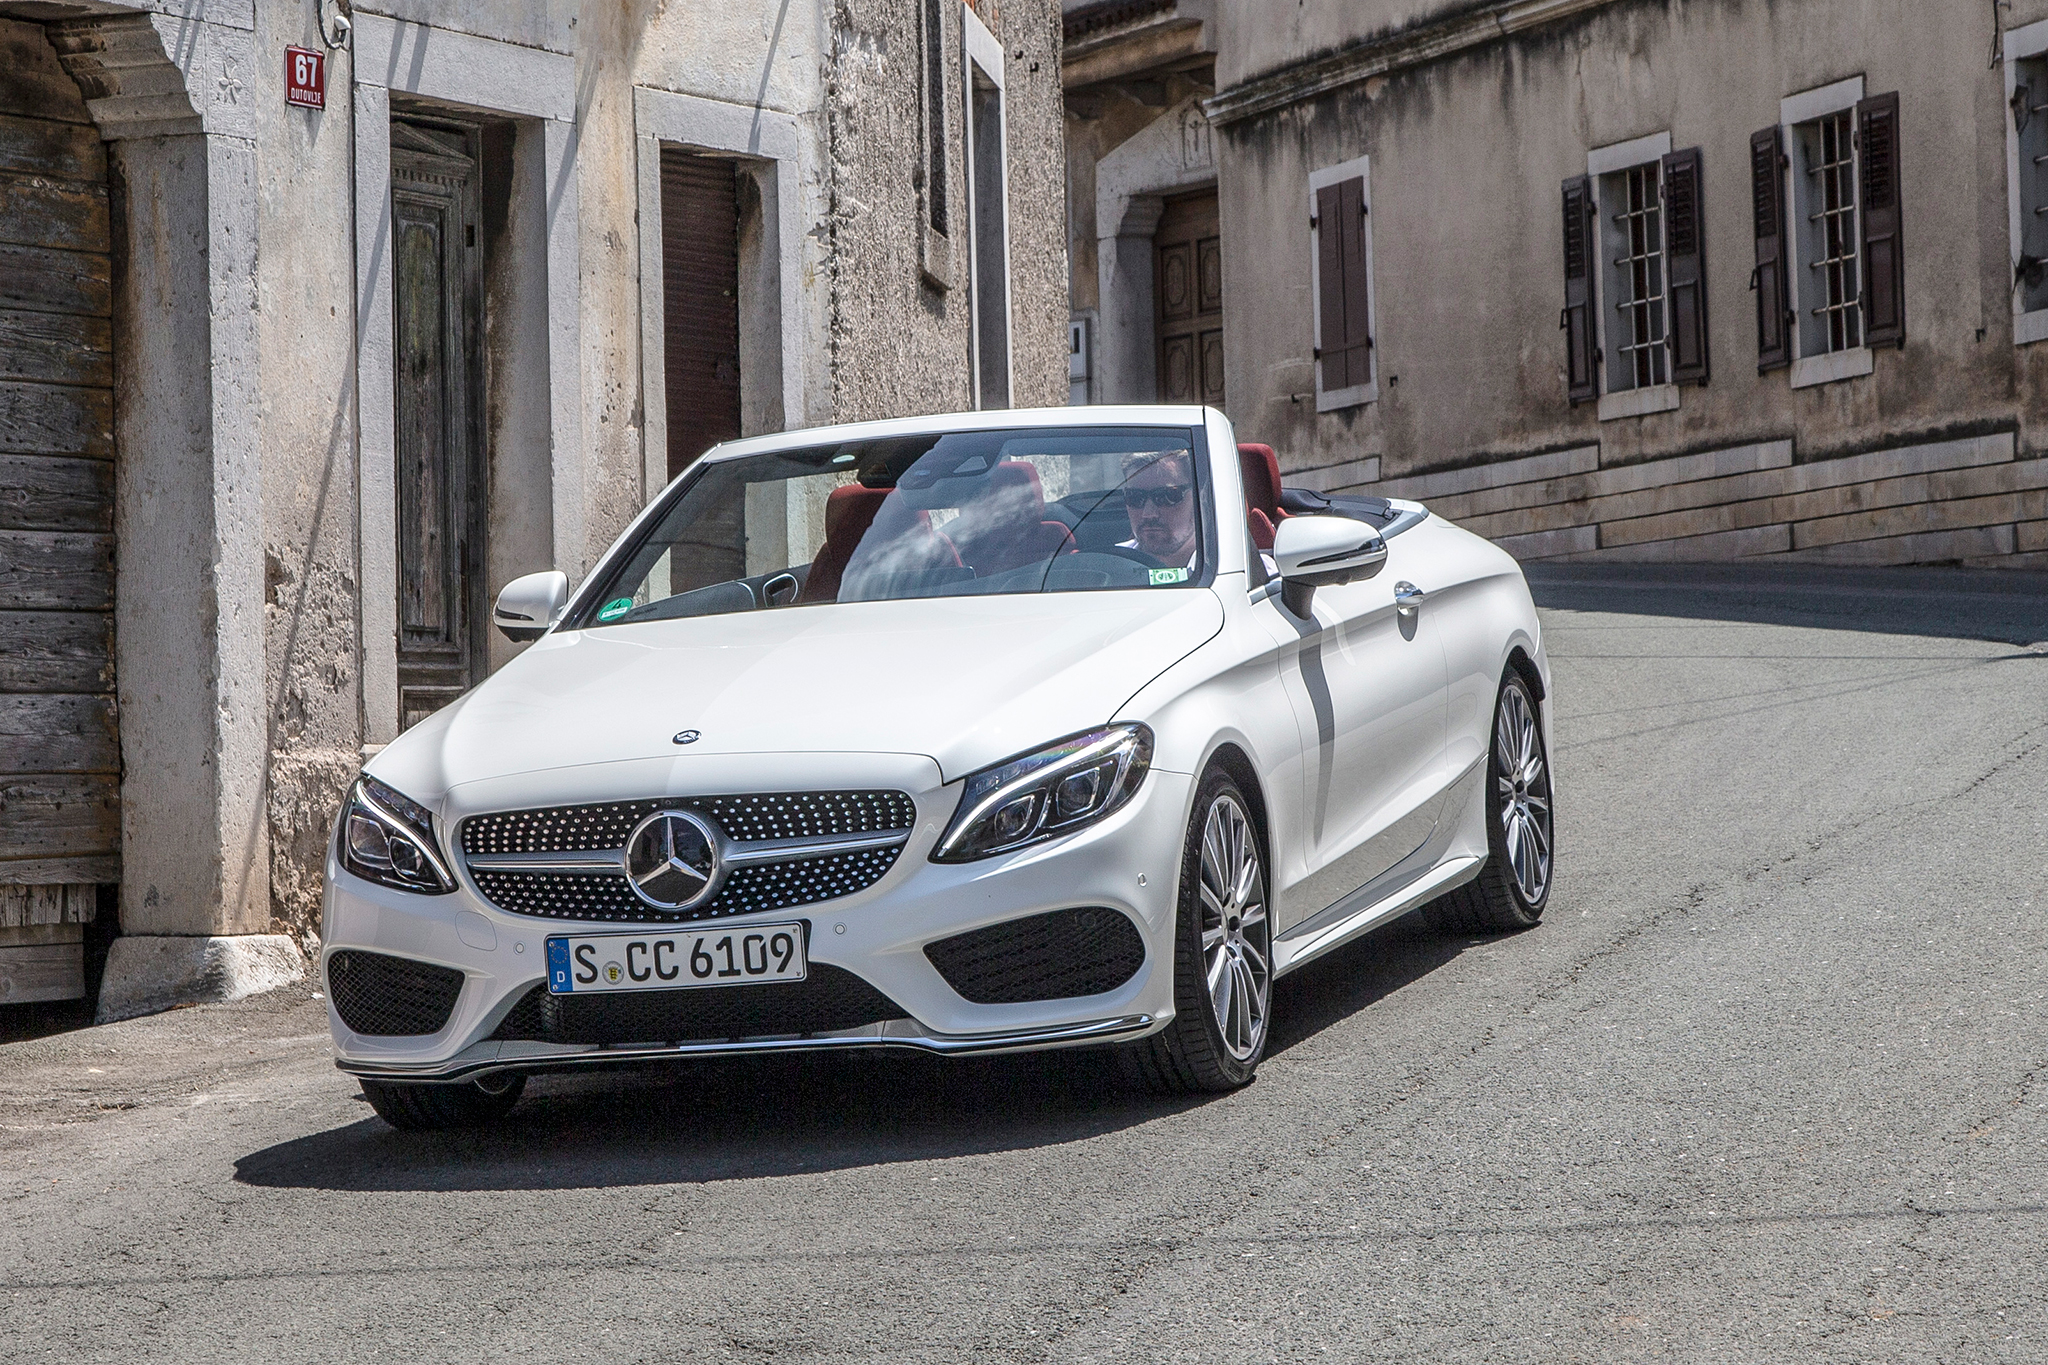 2017 C300 Cabriolet standard features include LED headlights, a rear view camera, heated power front seats, heated neck-warming front-seat vents, hands-free keyless access, and the Dynamic Select system.